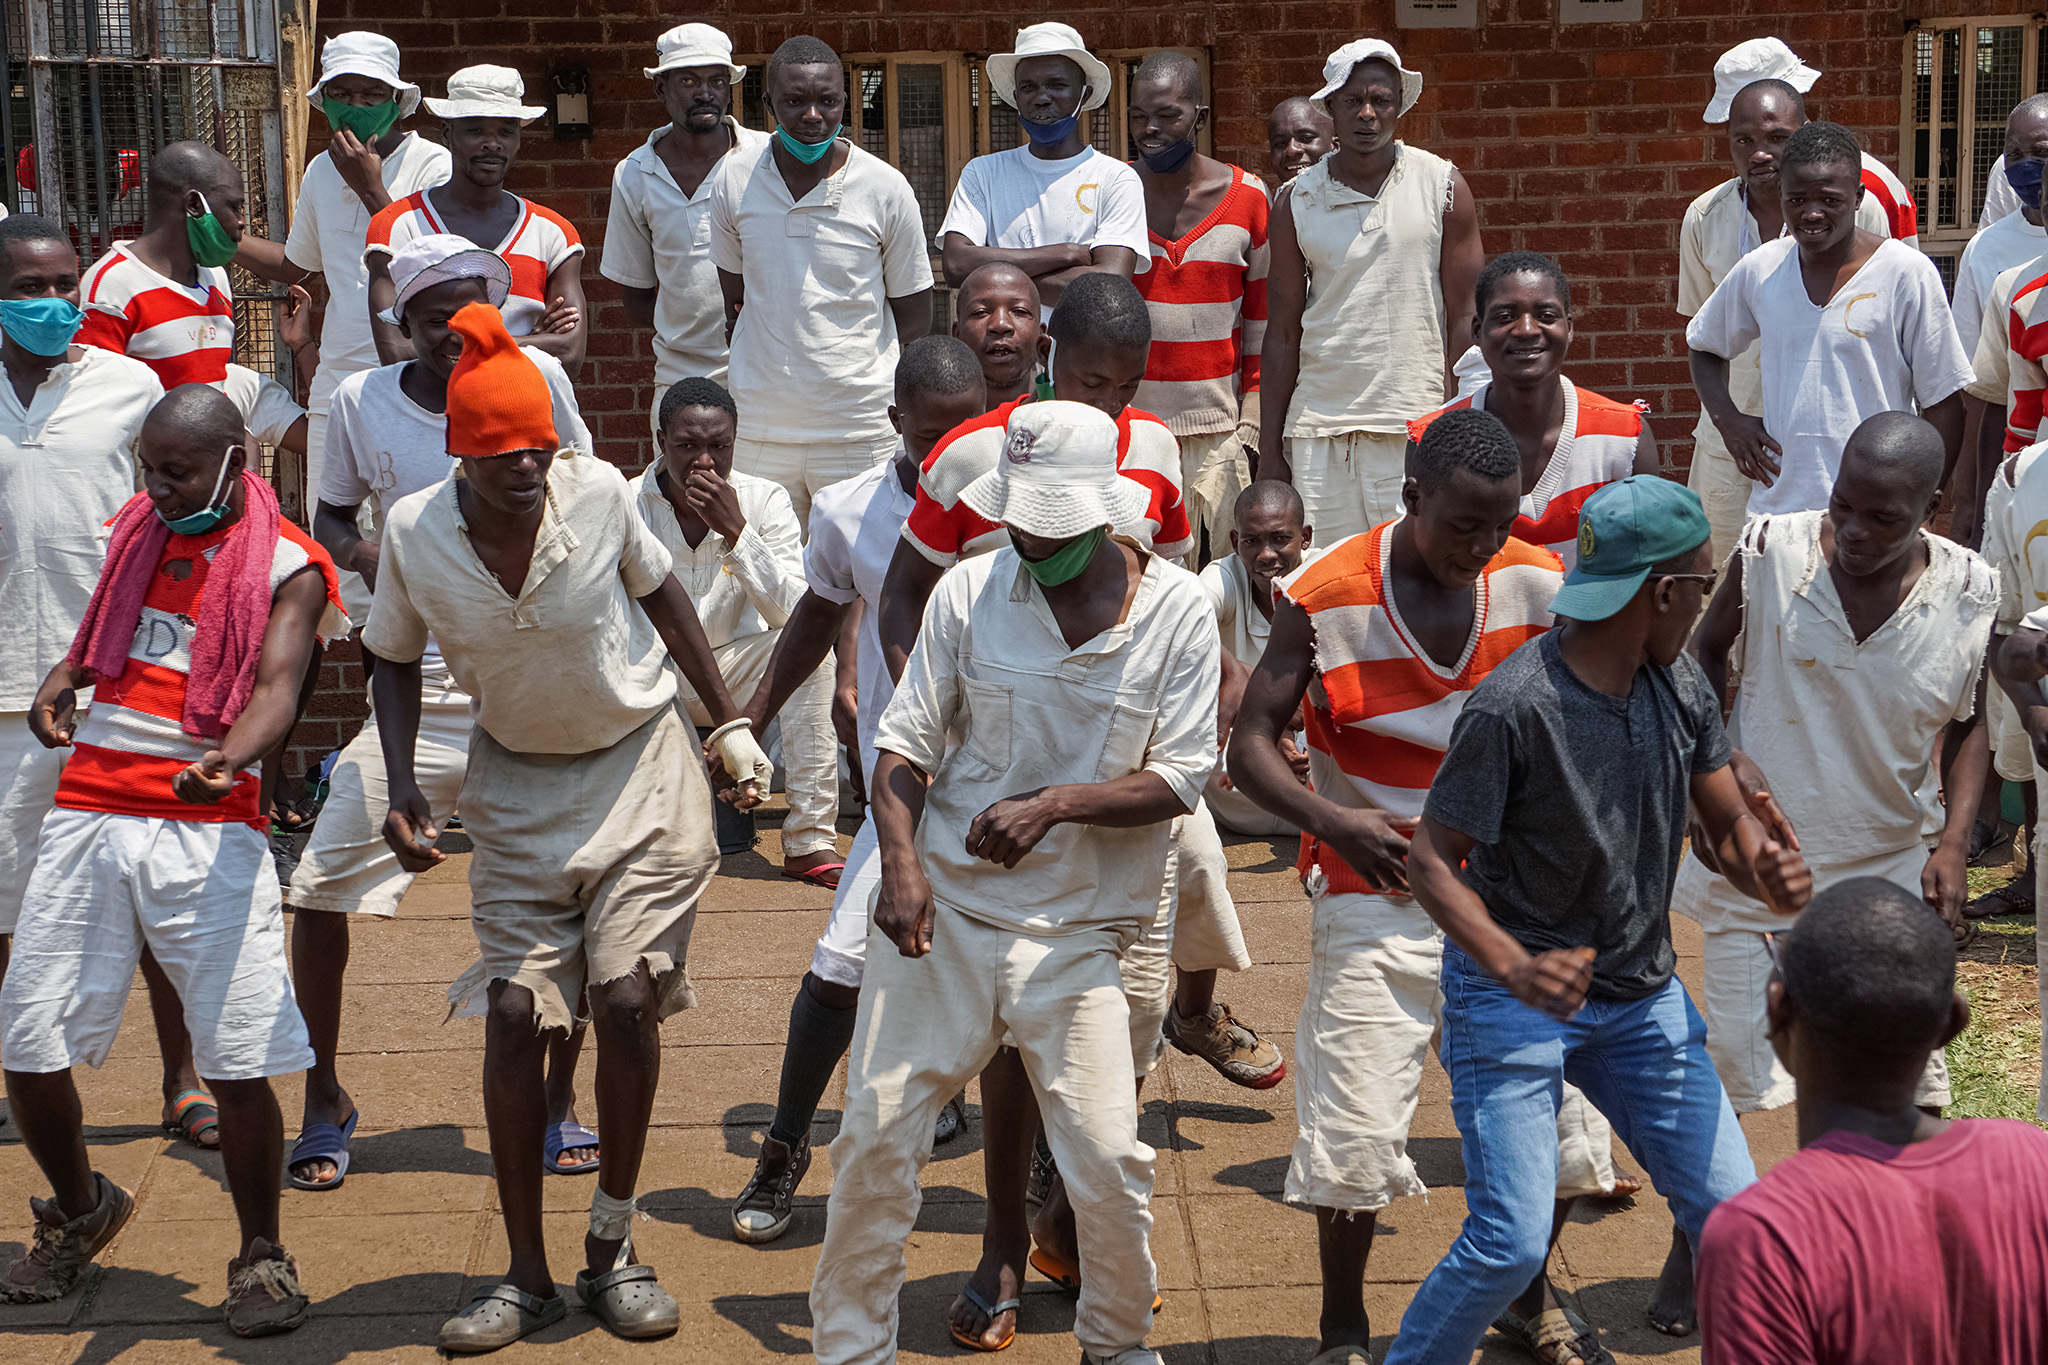 Zimbabwean scheme keeps convicted youths out of jail